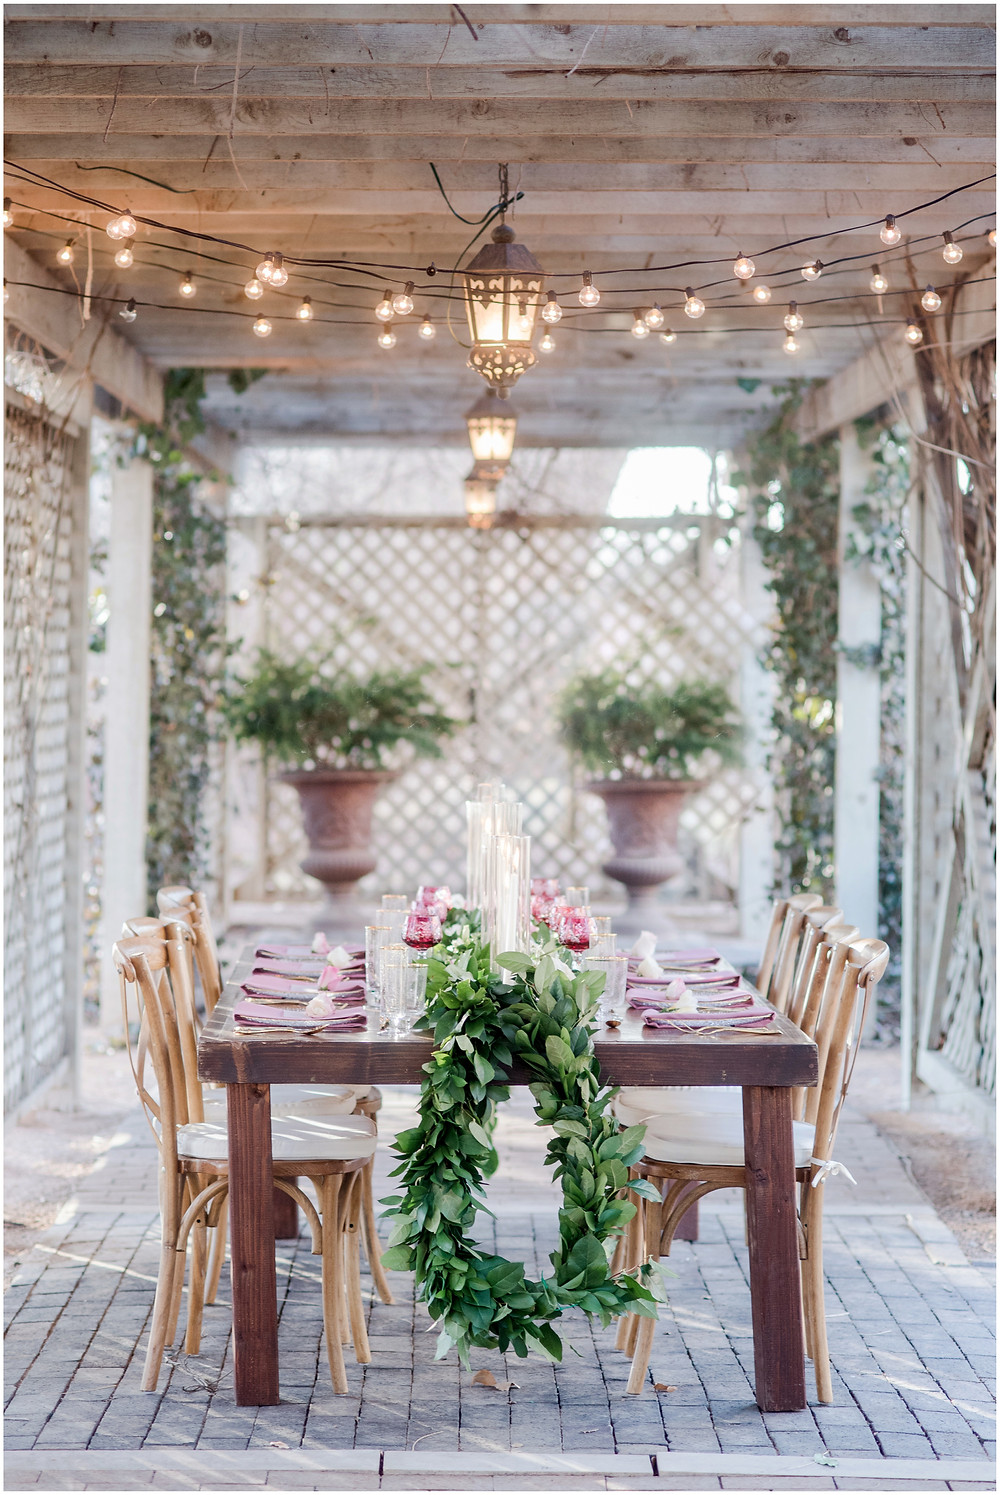 backyard reception idea. Backyard dinner party seating. Wedding reception table decor. Table garland. bistro light. backyard dinner ideas.